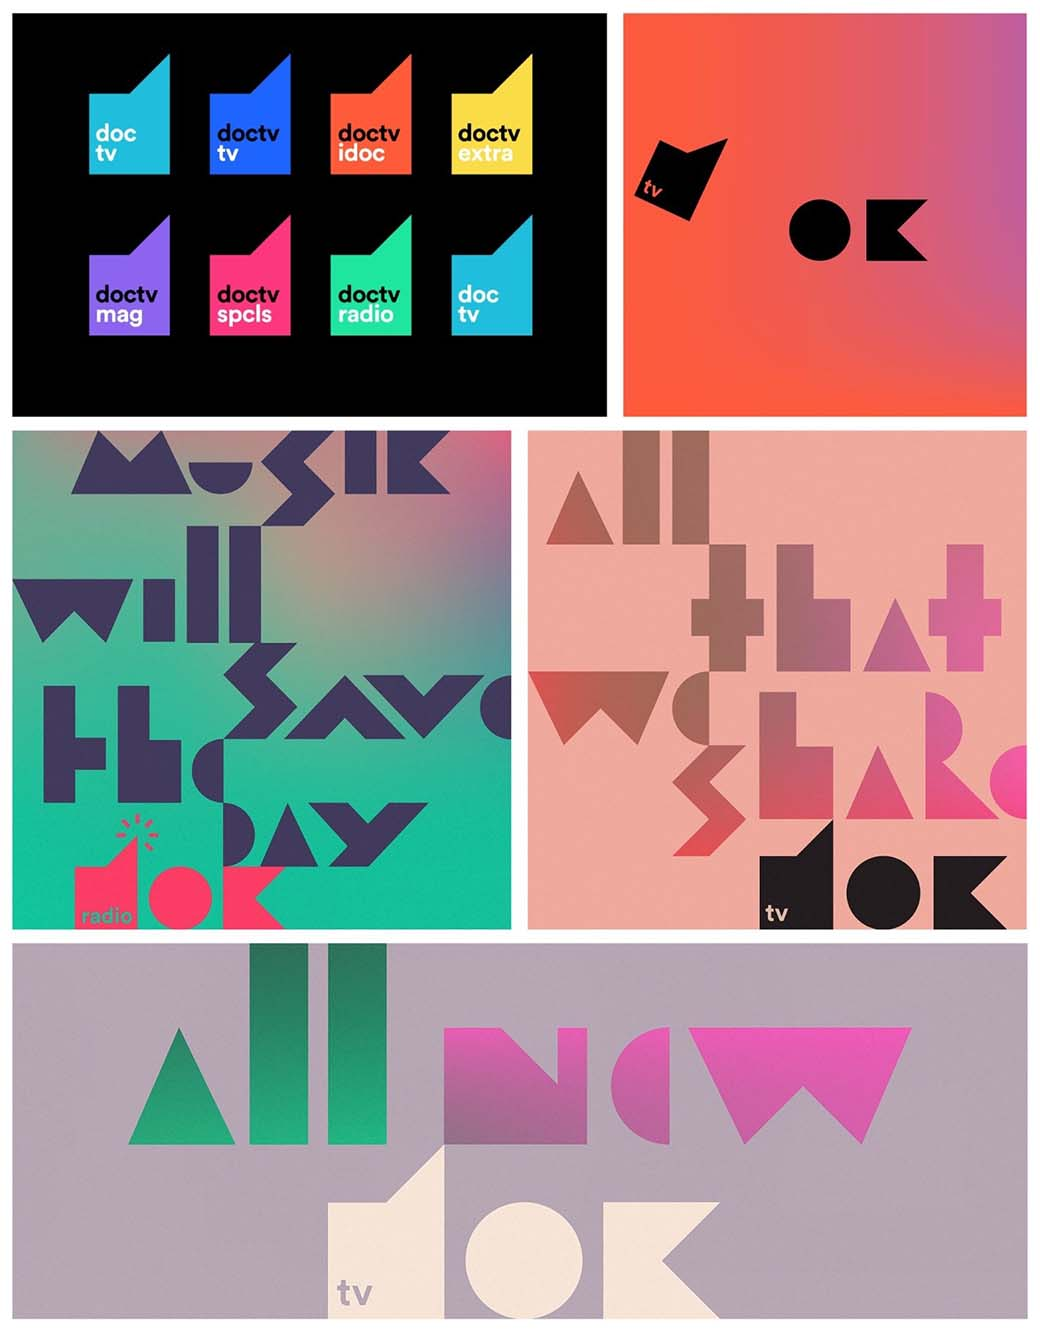 web design trend - complex colors and geometry